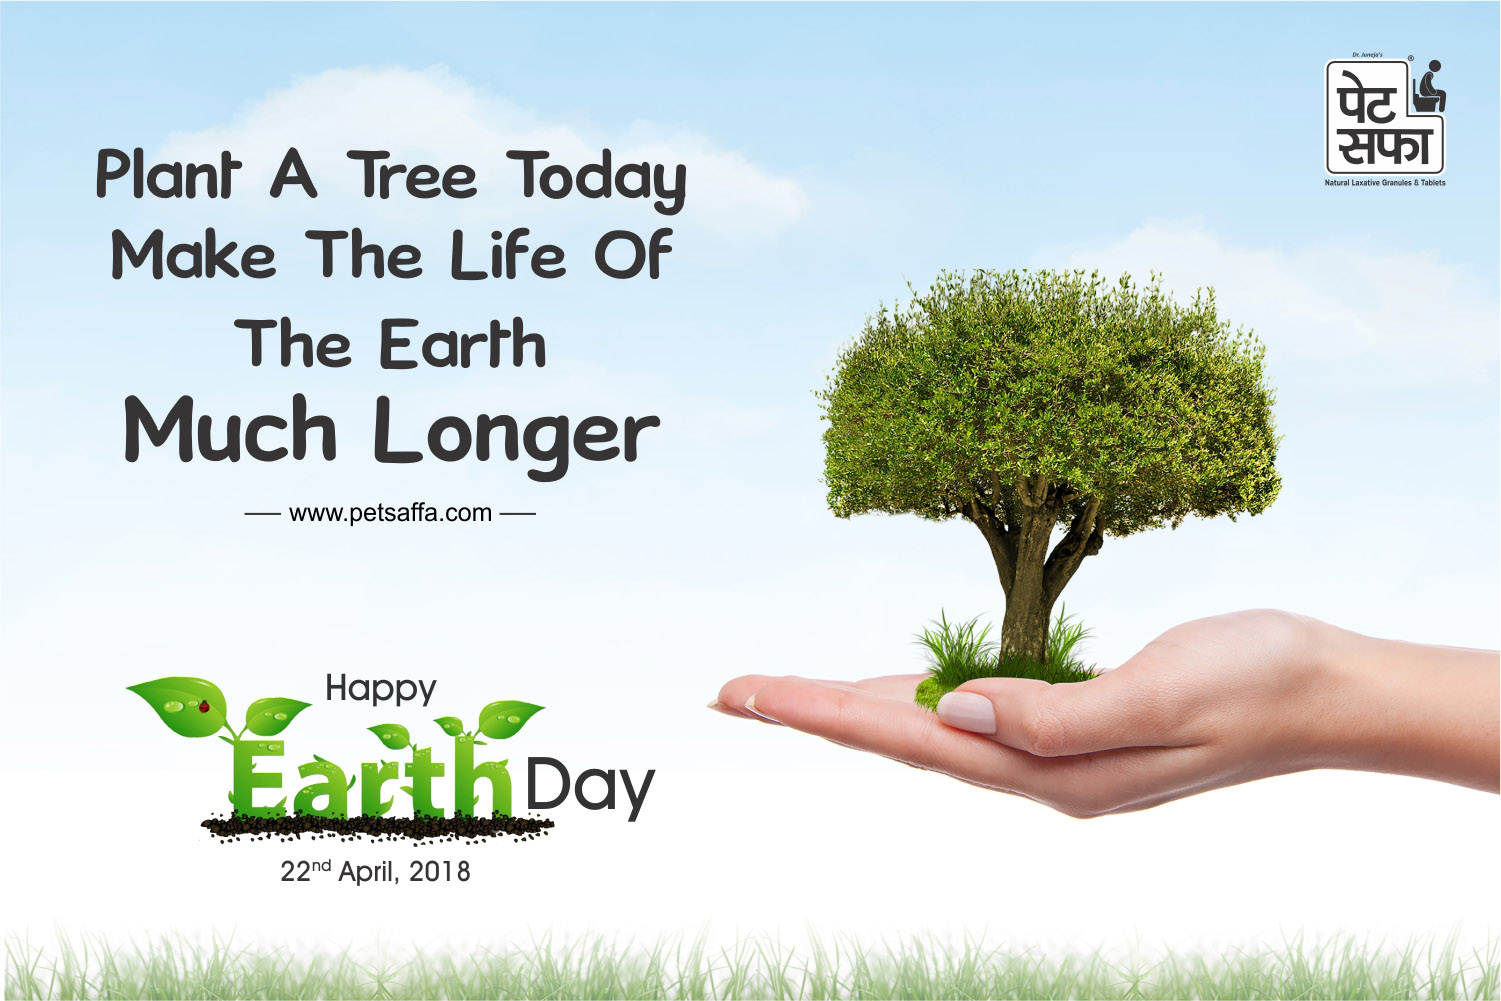 22 April 2018, Happy Earth Day, National International Day, Pet Saffa